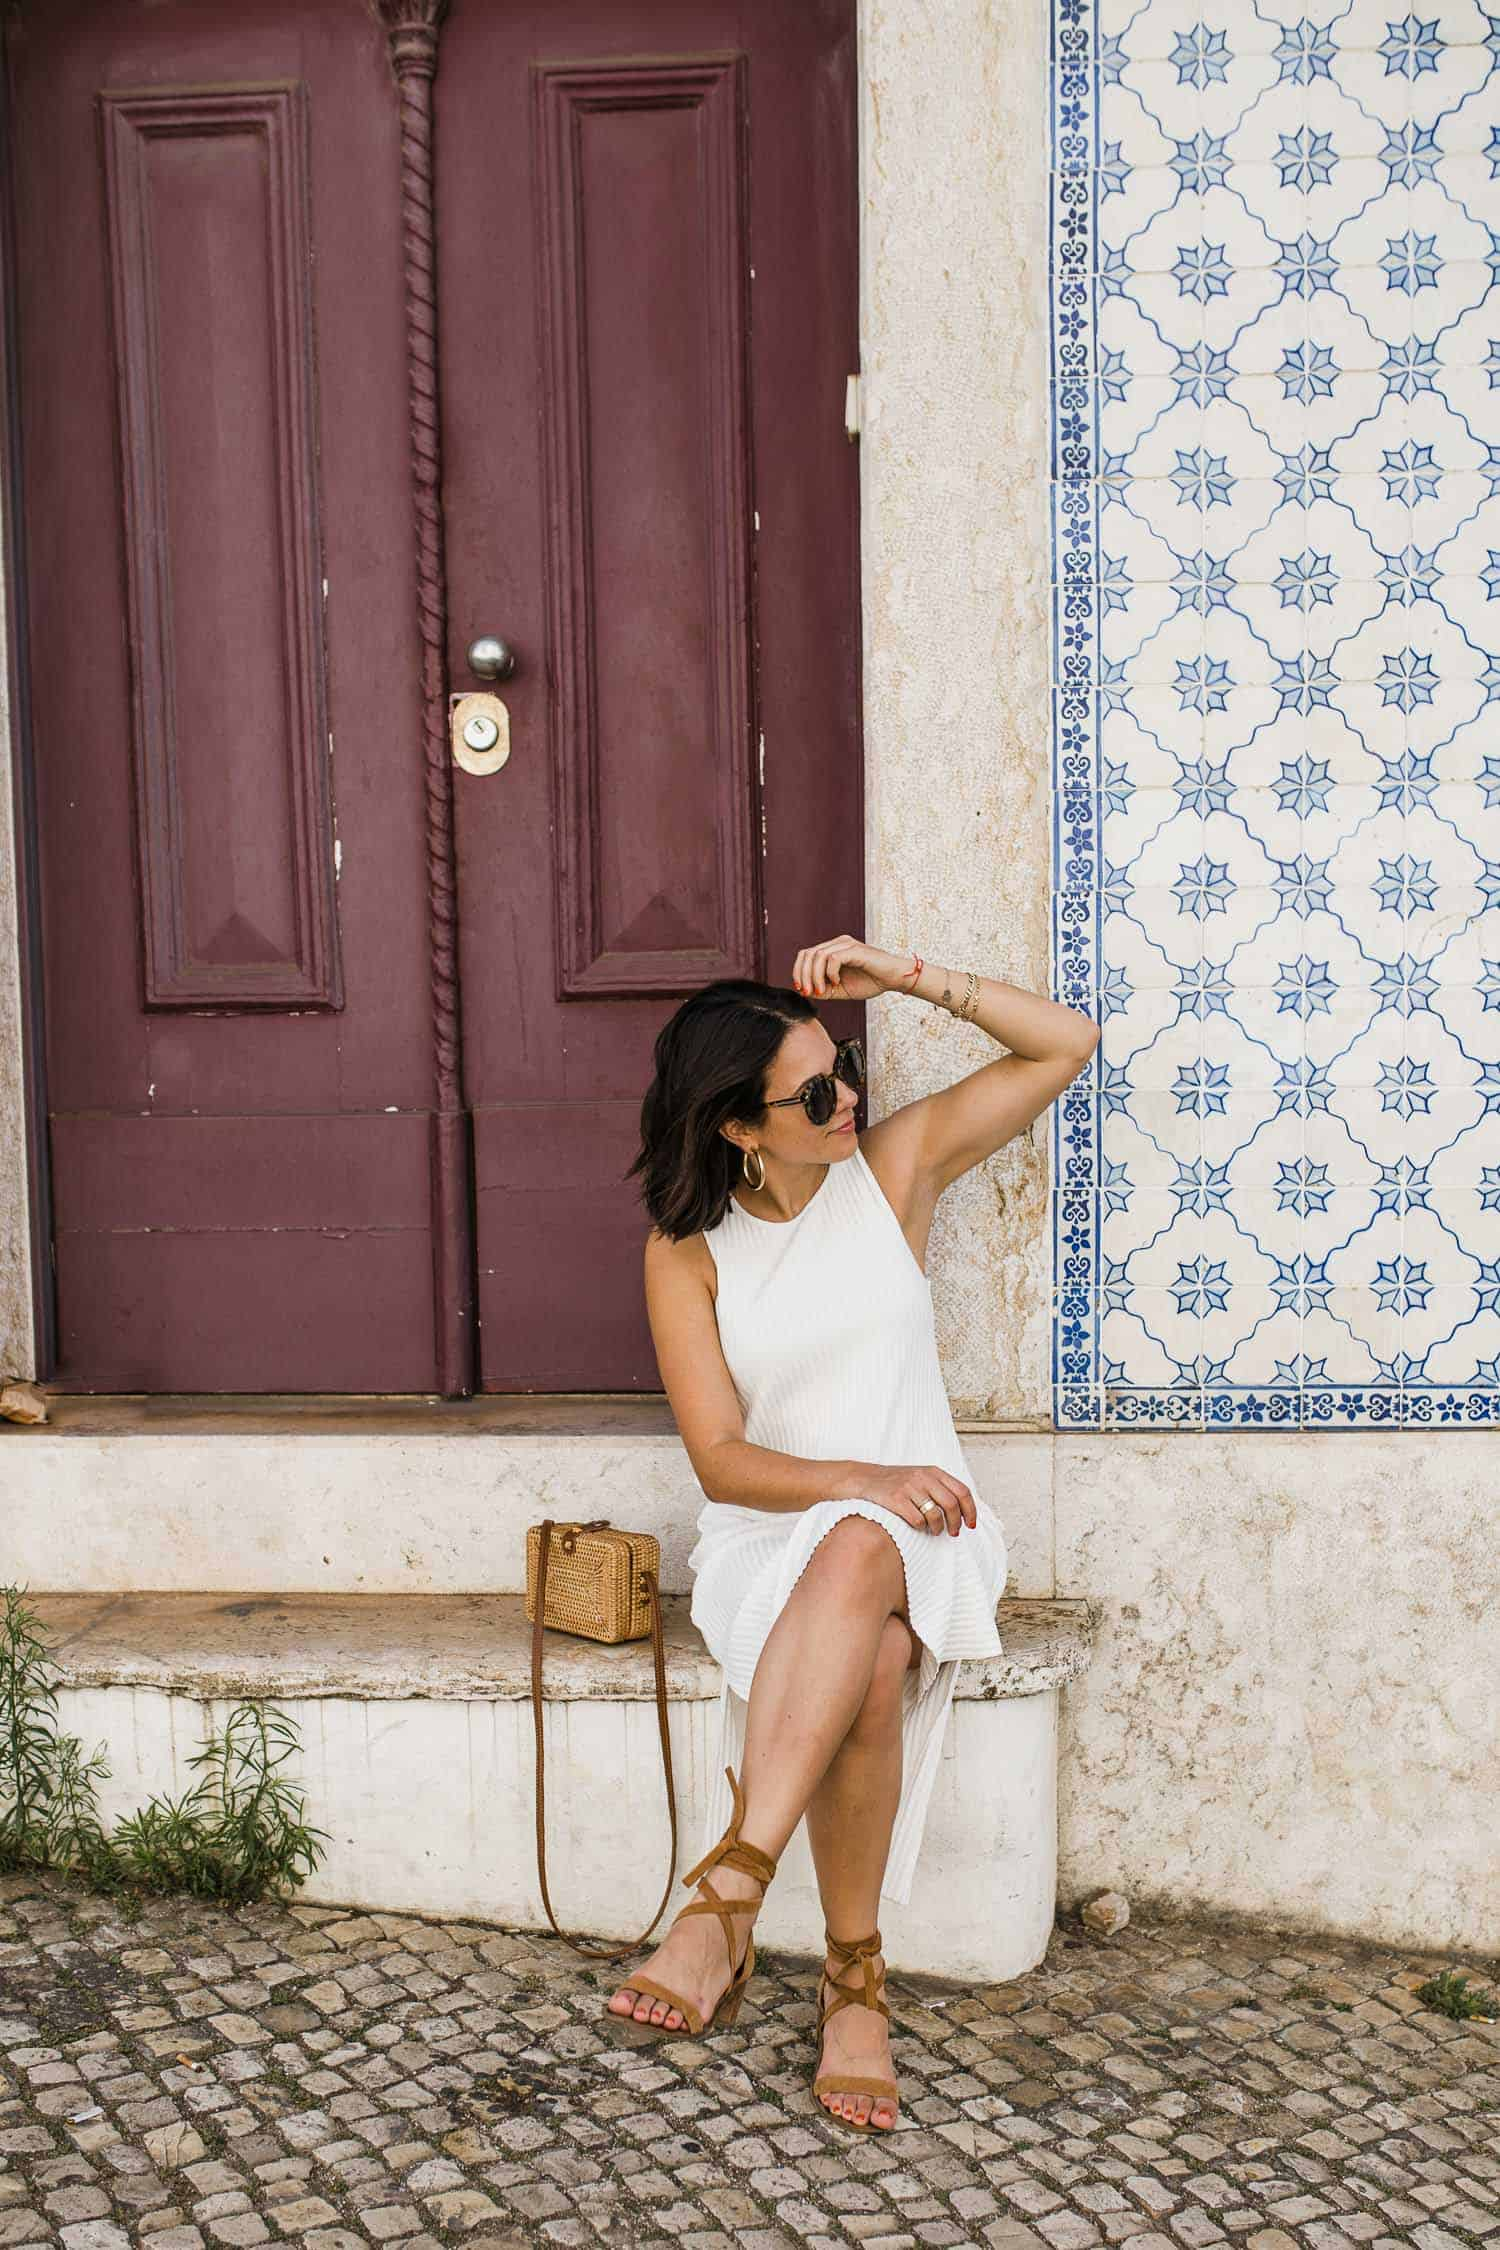 Lisbon is beautiful, a girl in a white dress